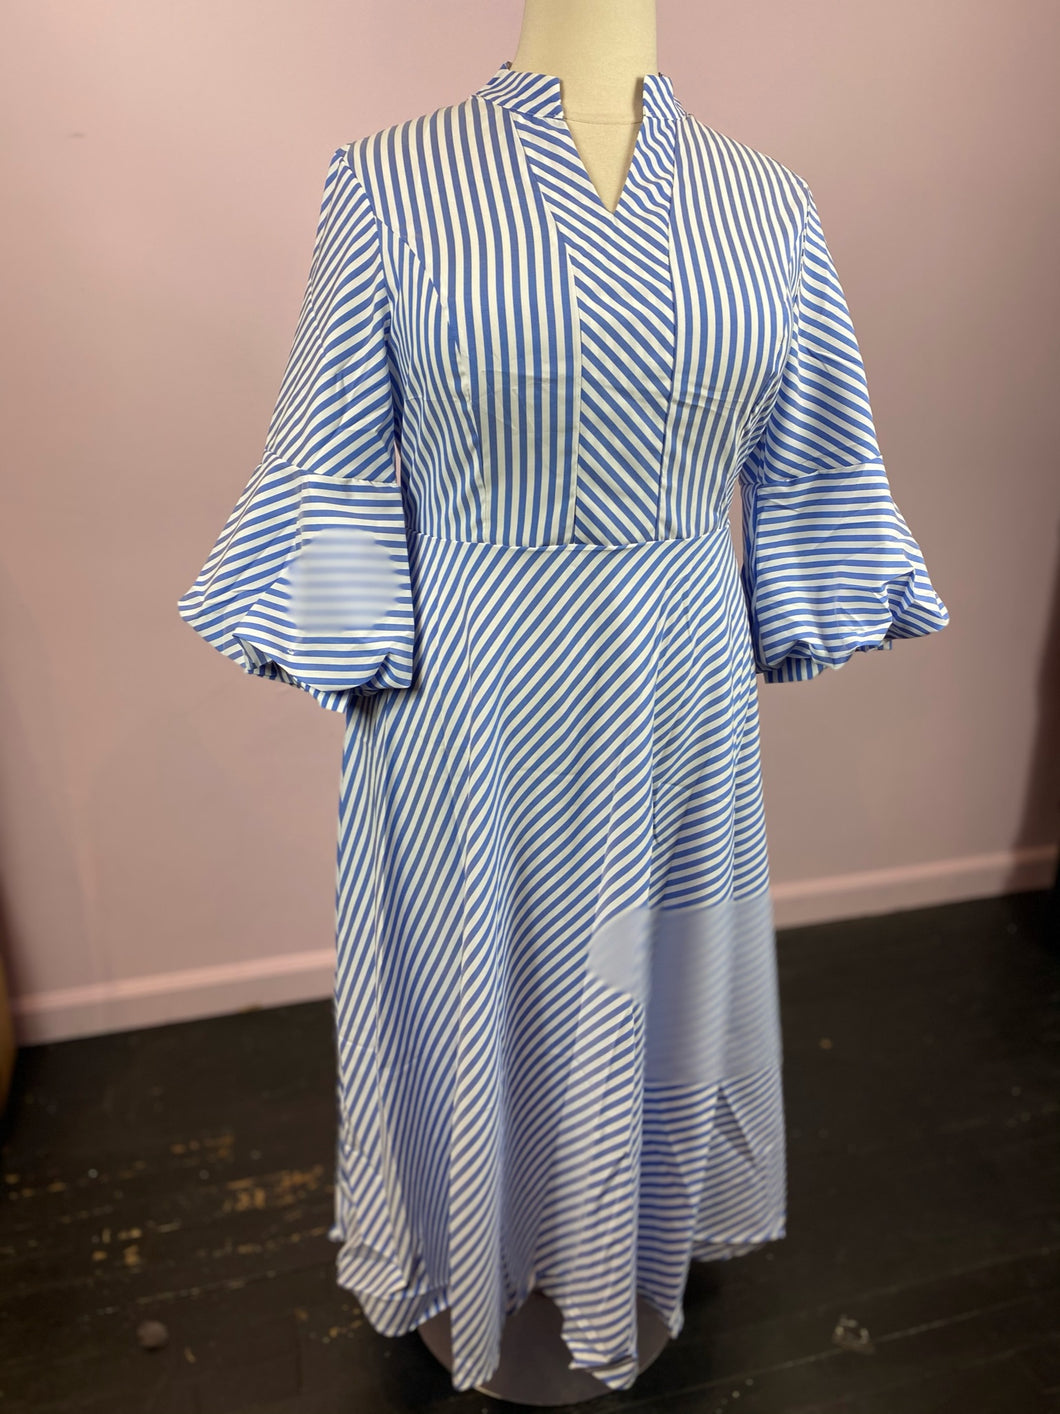 Blue and White Striped Dress with Bell Sleeves, by SHEIN size 1X, 2X, 3X & 4X